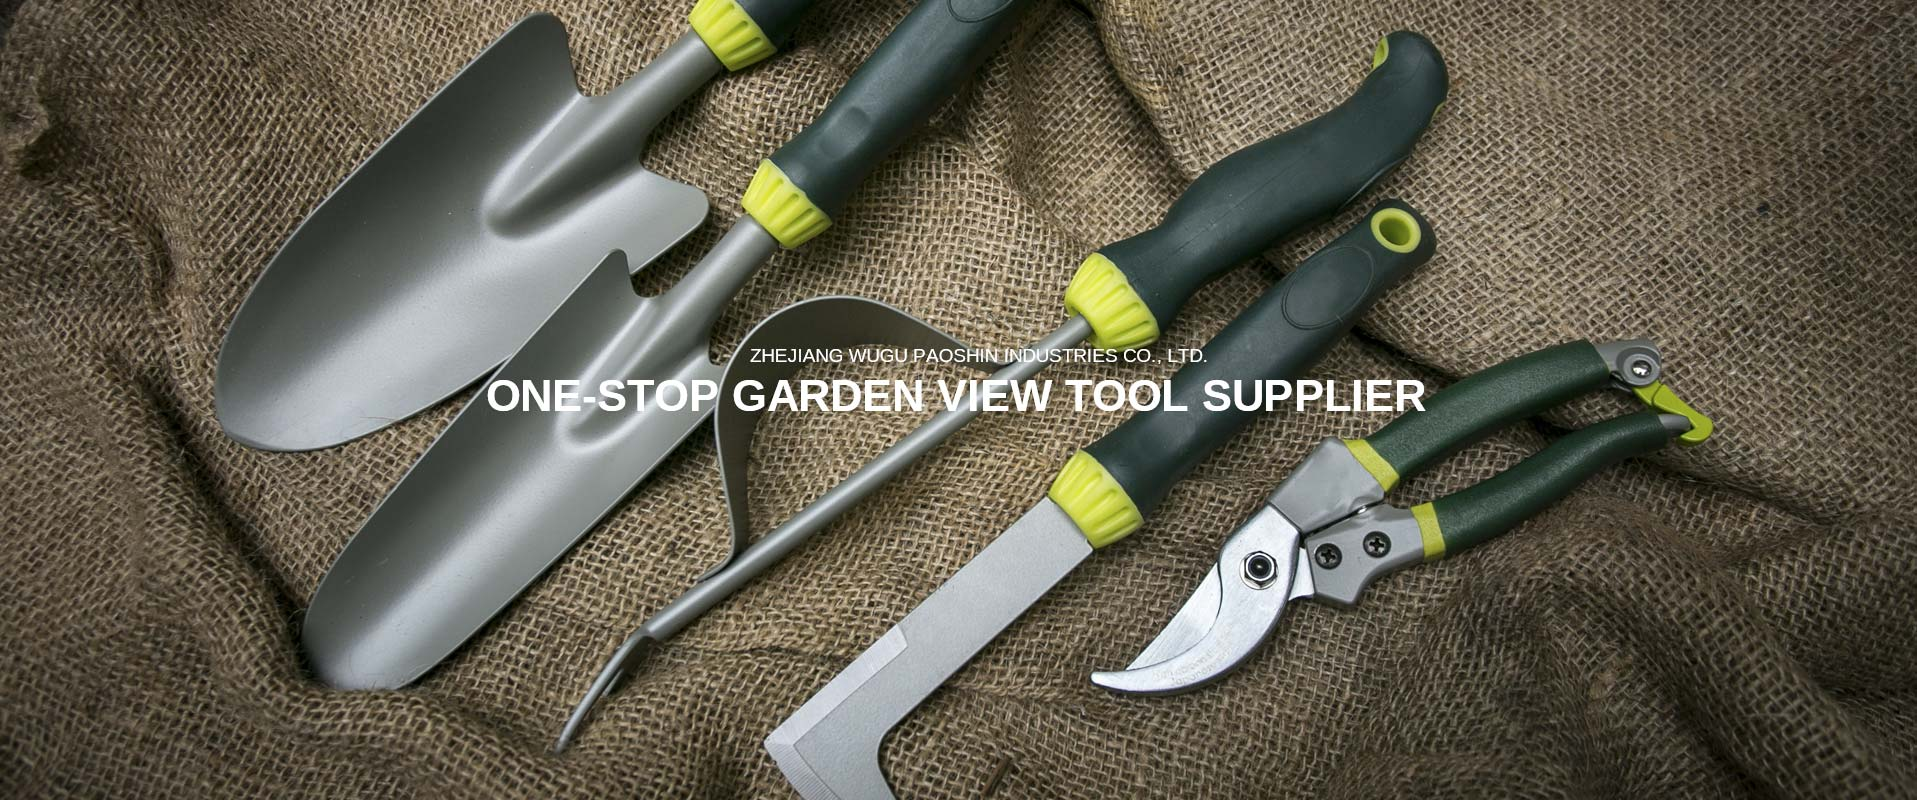 Talking about the tools used in the garden tools for grafting